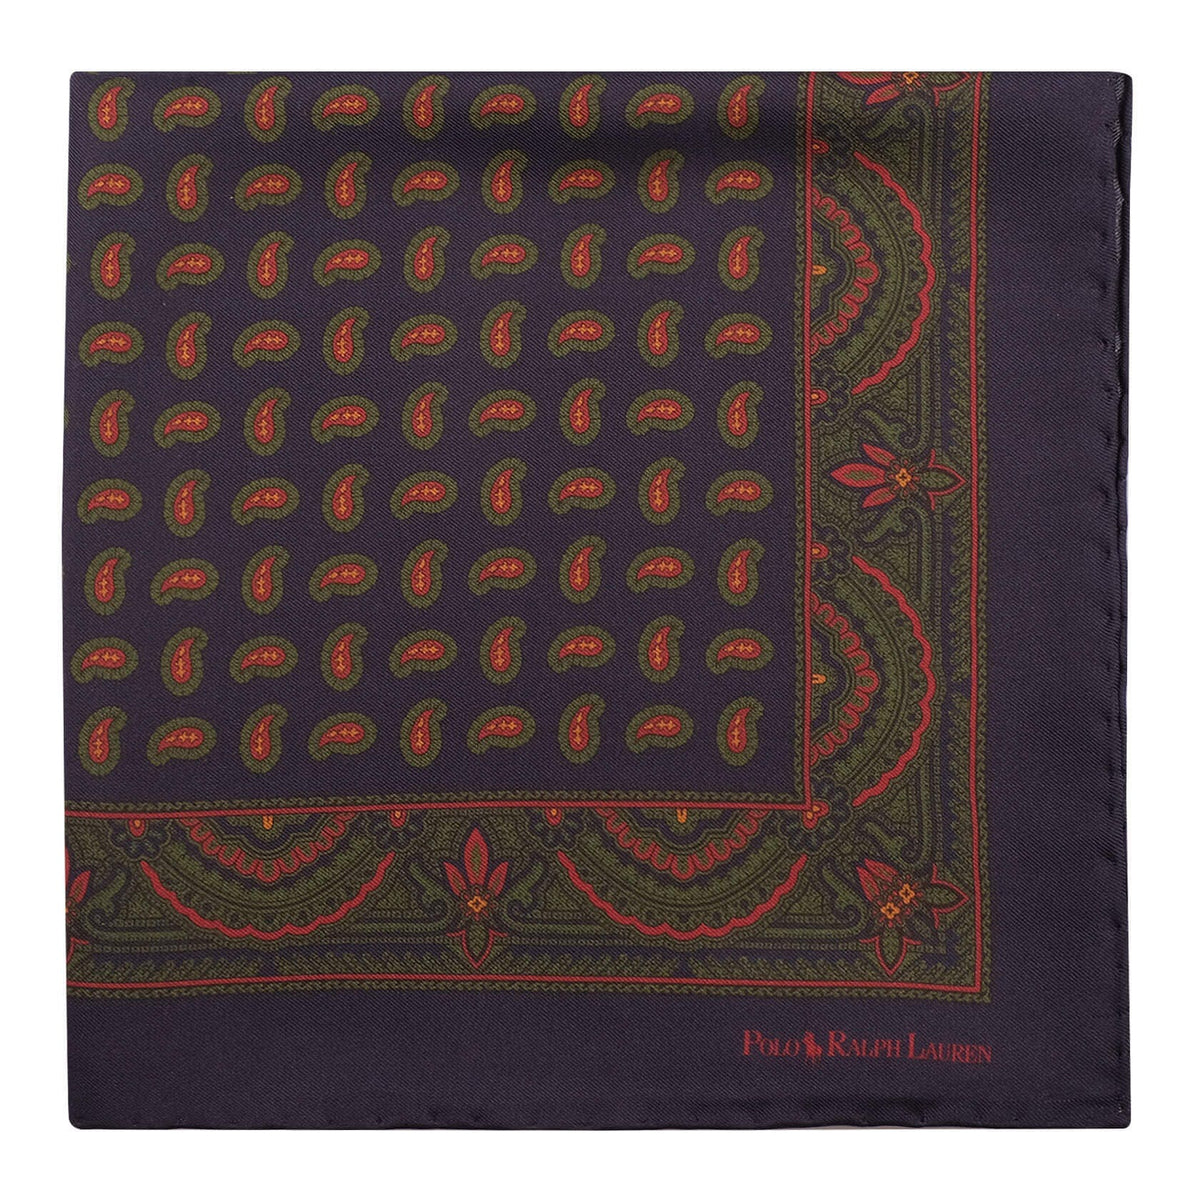 Ralph Lauren Multi Paisley Pattern Foulard Pocket Square - Navy